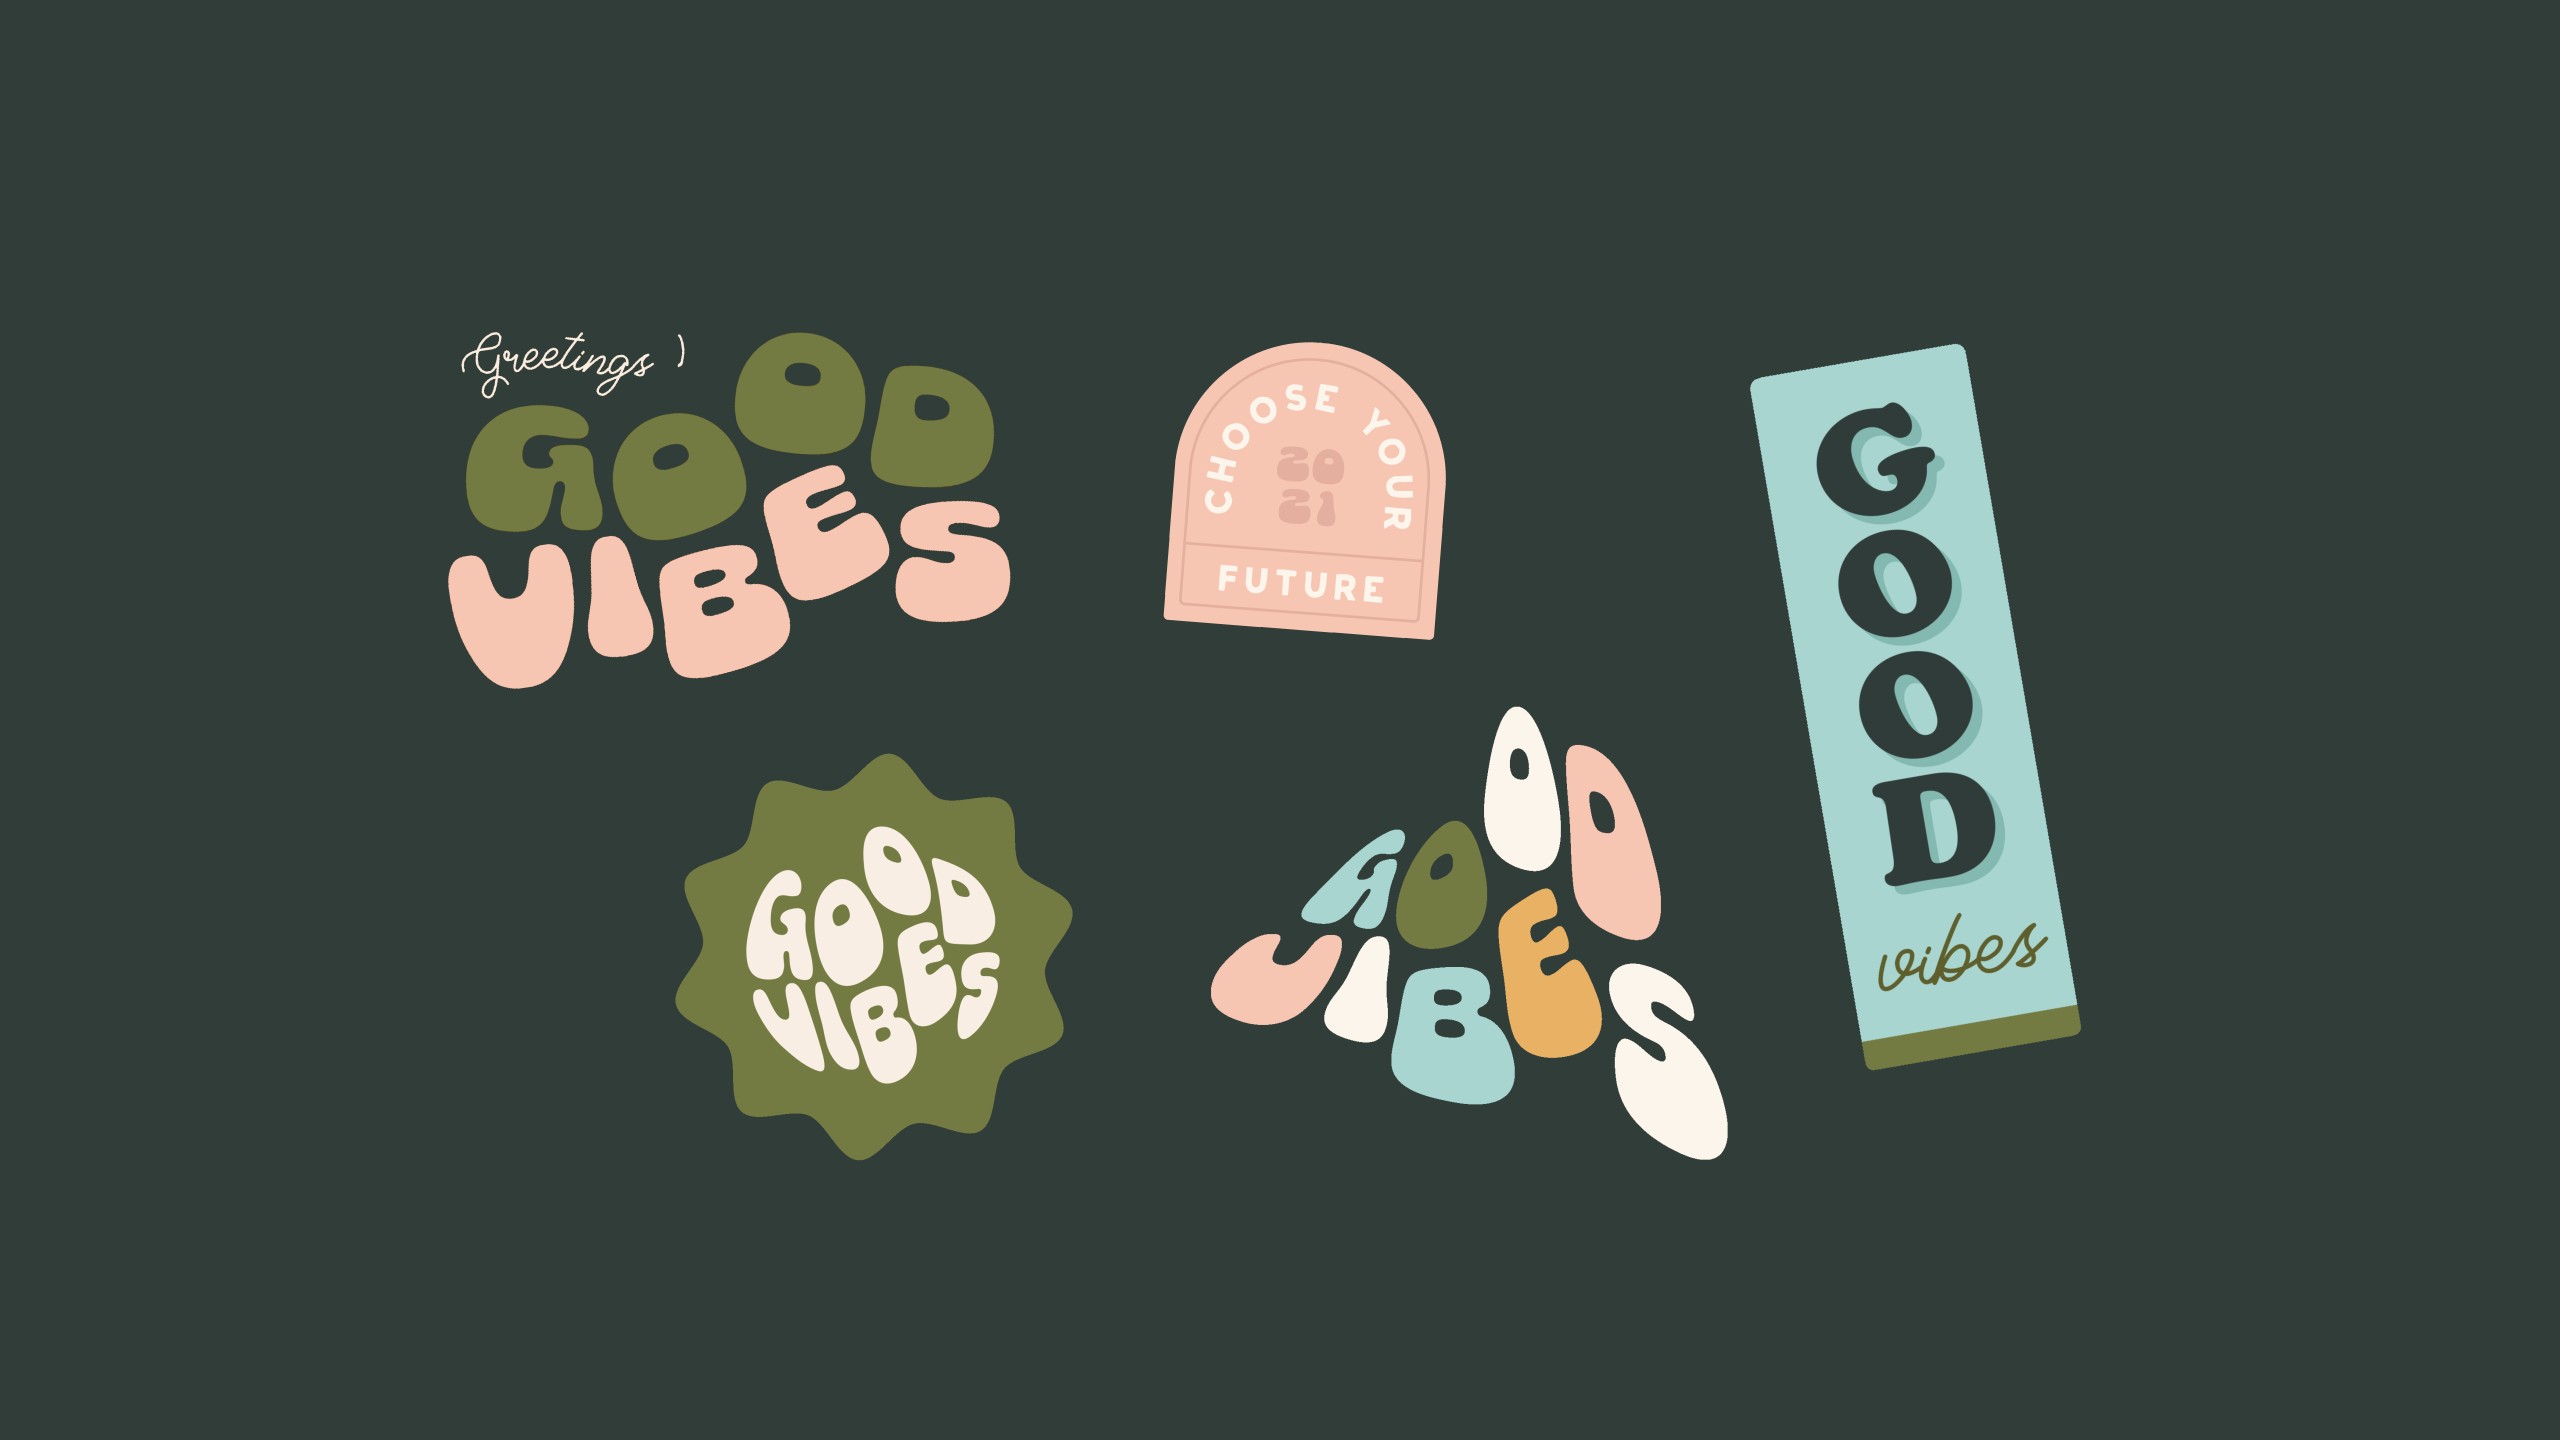 Animated sticker GIF design for Bobbie at Good Vibes, a mindfulness & coaching business for women within the creative & tech industries - designed by Wiltshire-based graphic designer, Kaye Huett